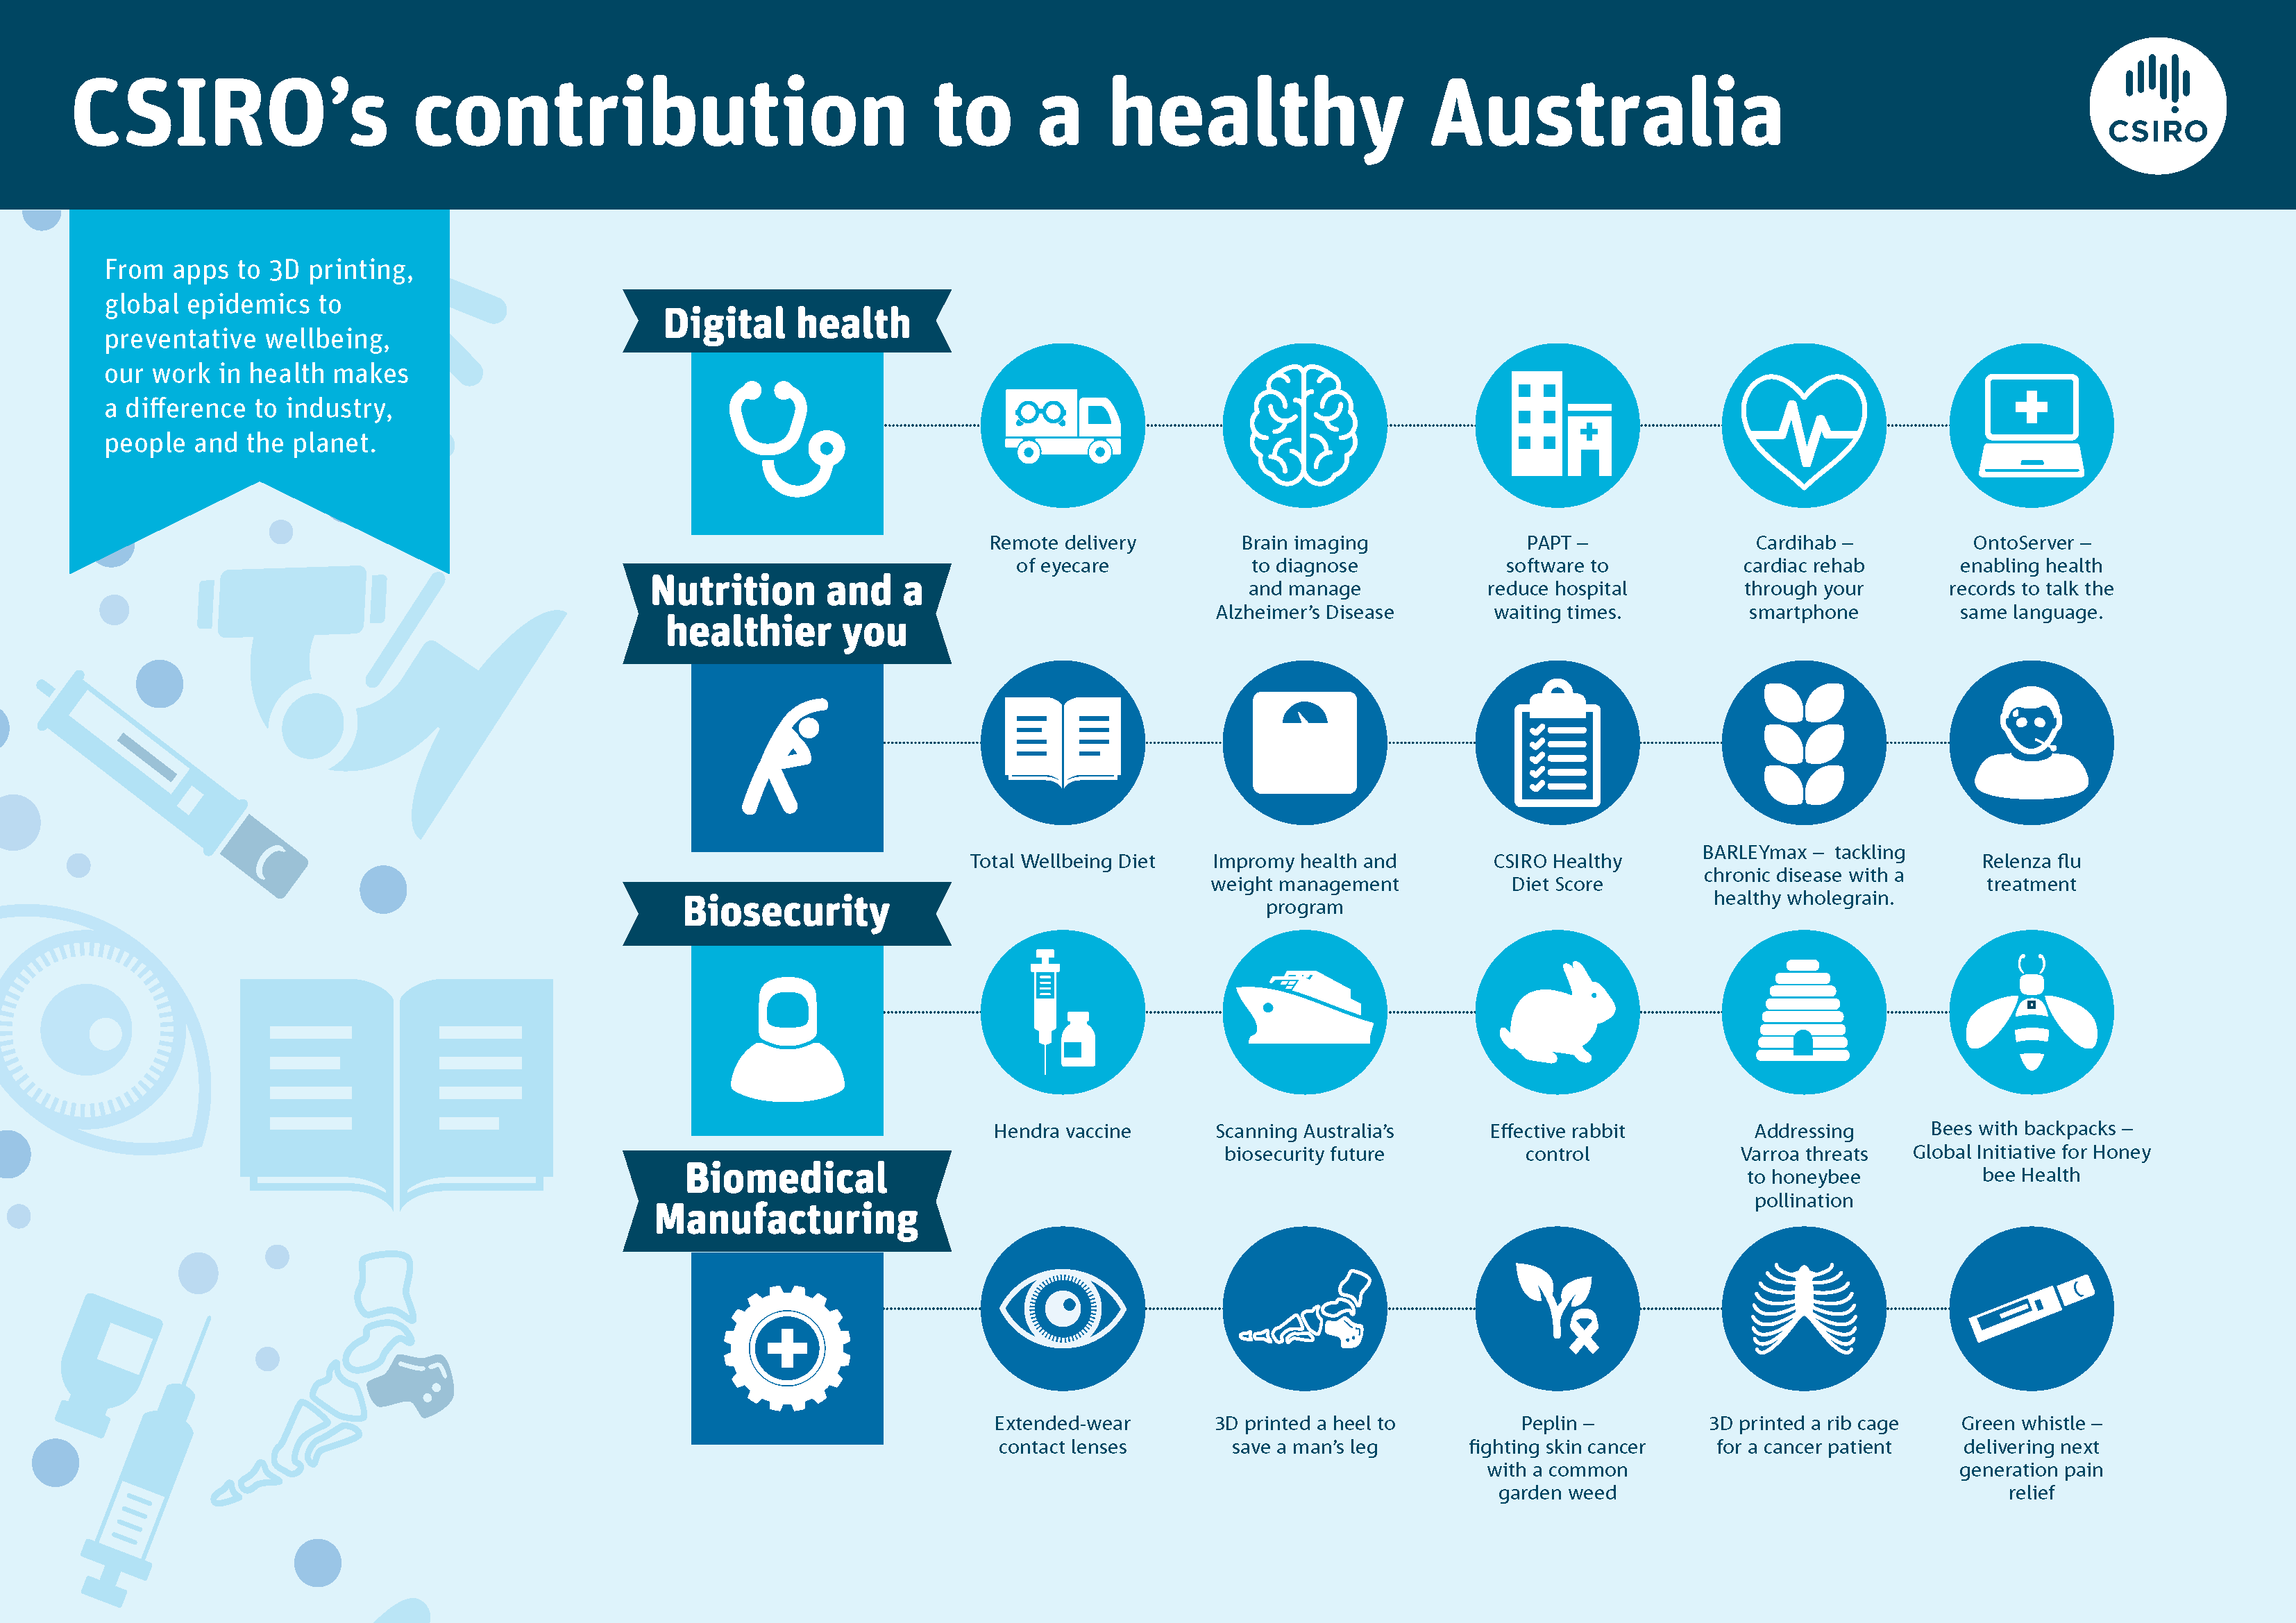 Infographic communicating CSIRO's contribution to a healthy Australia.